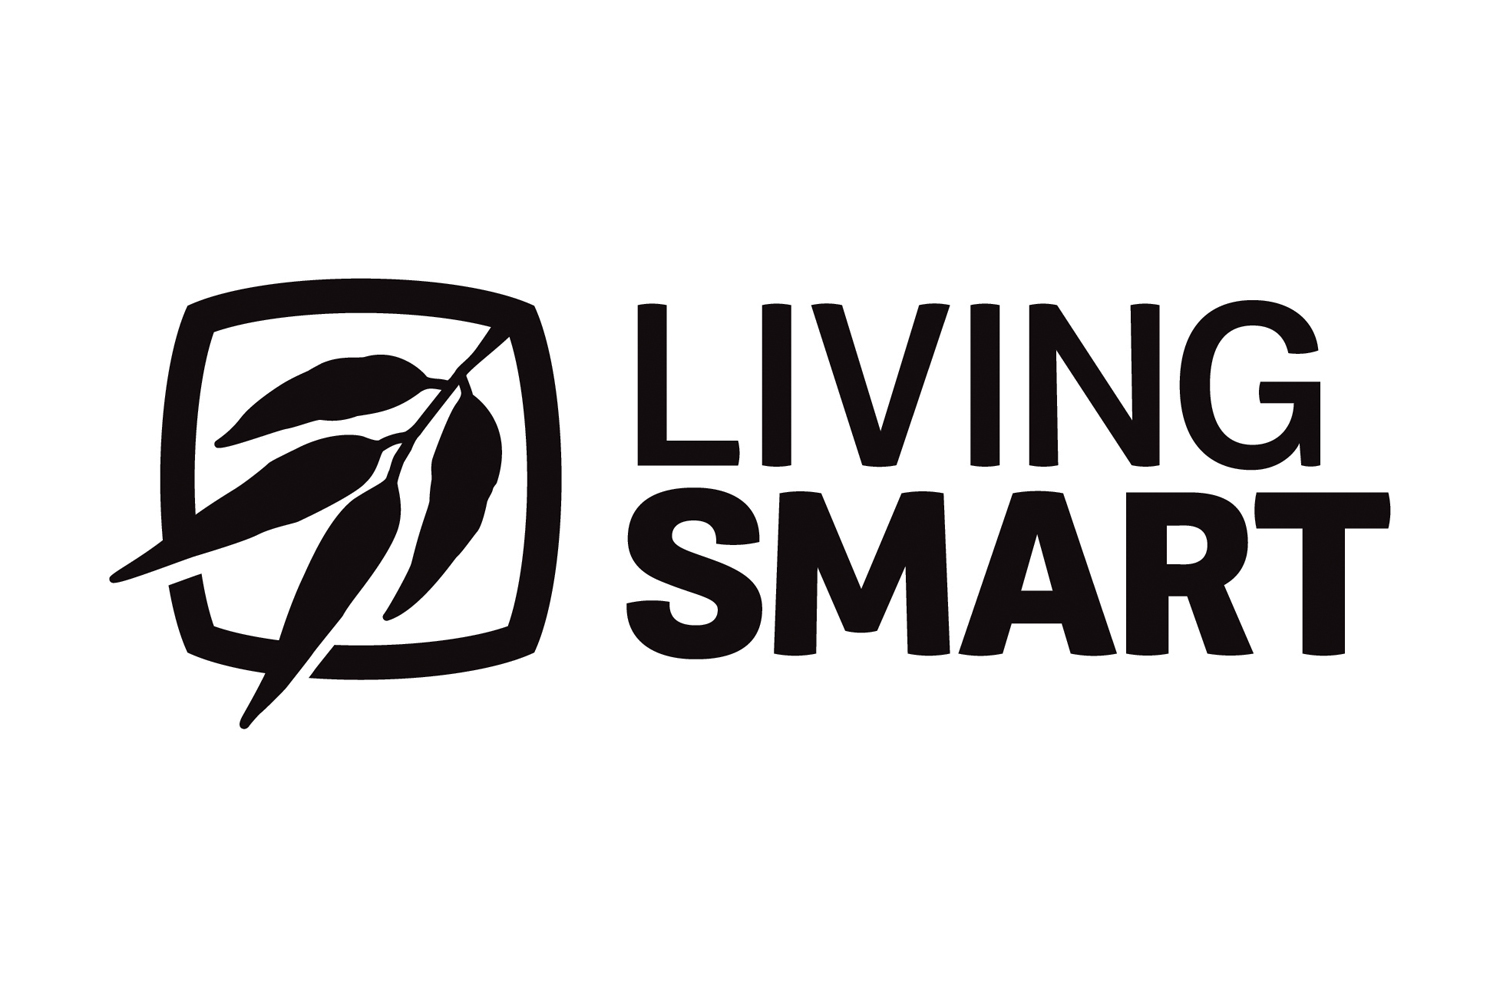 Tiamco-living-smart-1500x1000-logo-1.jpg